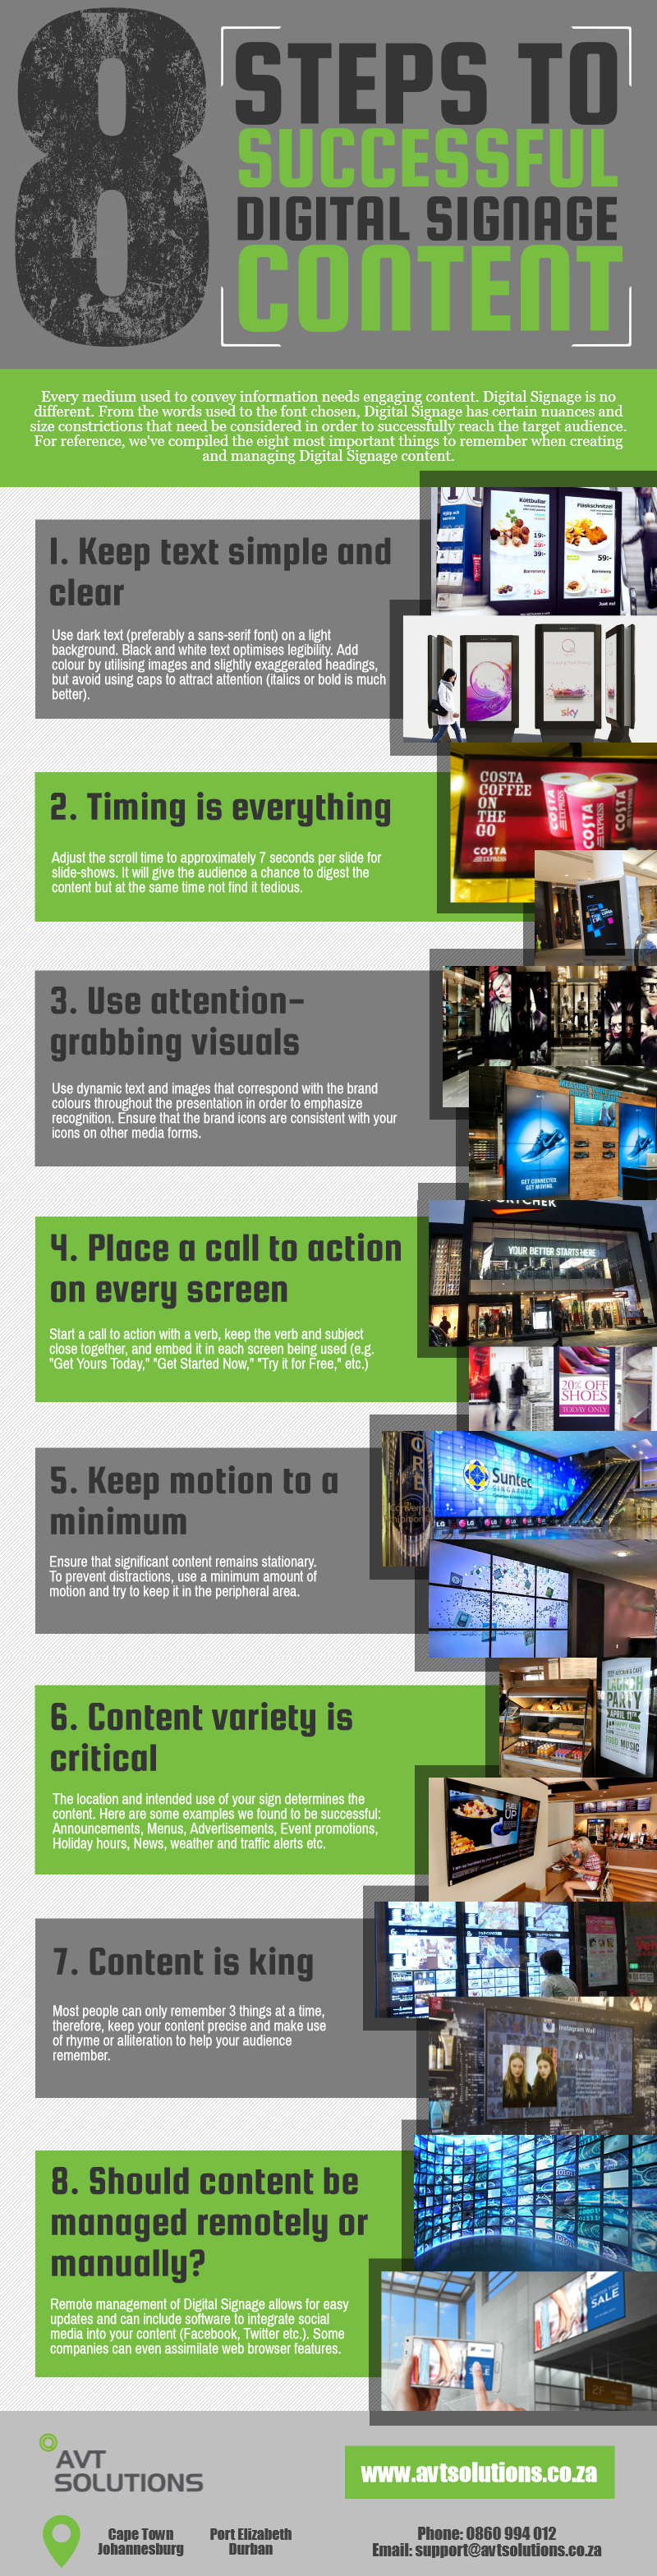 Infographic Avt Solutions 8 Steps To Successful Digital Signage Content Digital Signage Signage Digital